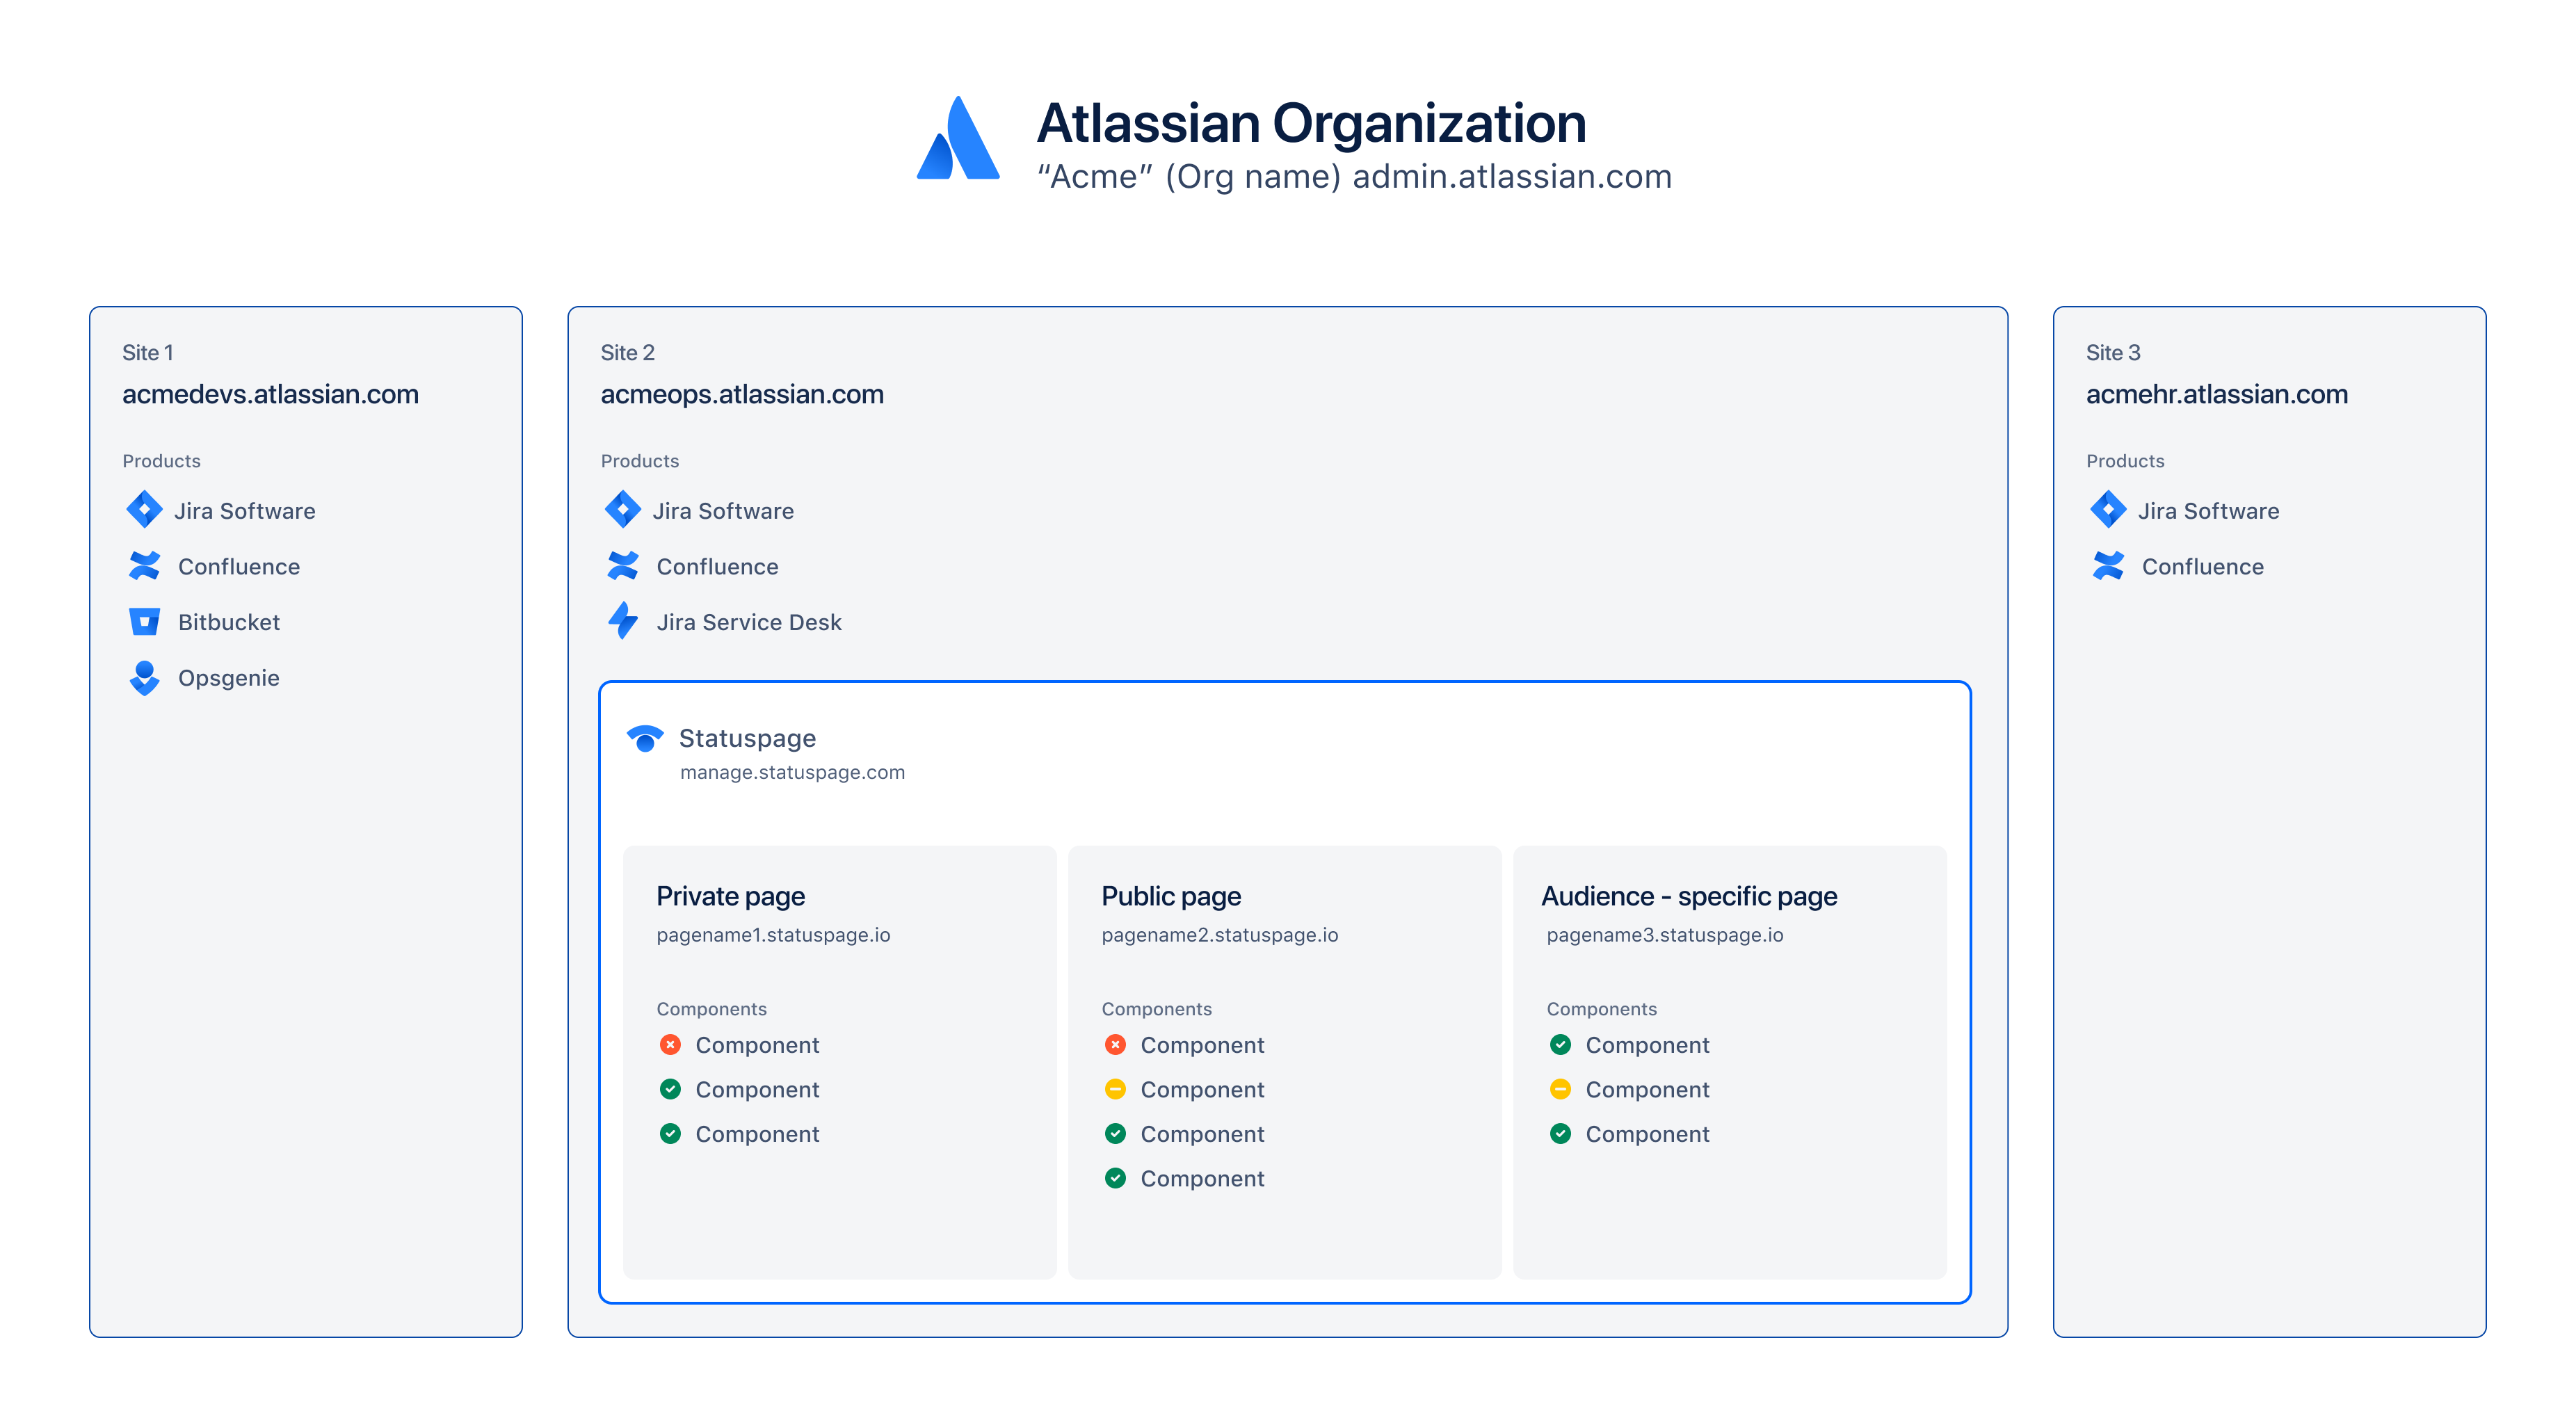 Shows the Atlassian organization structure after Statuspage is migrated